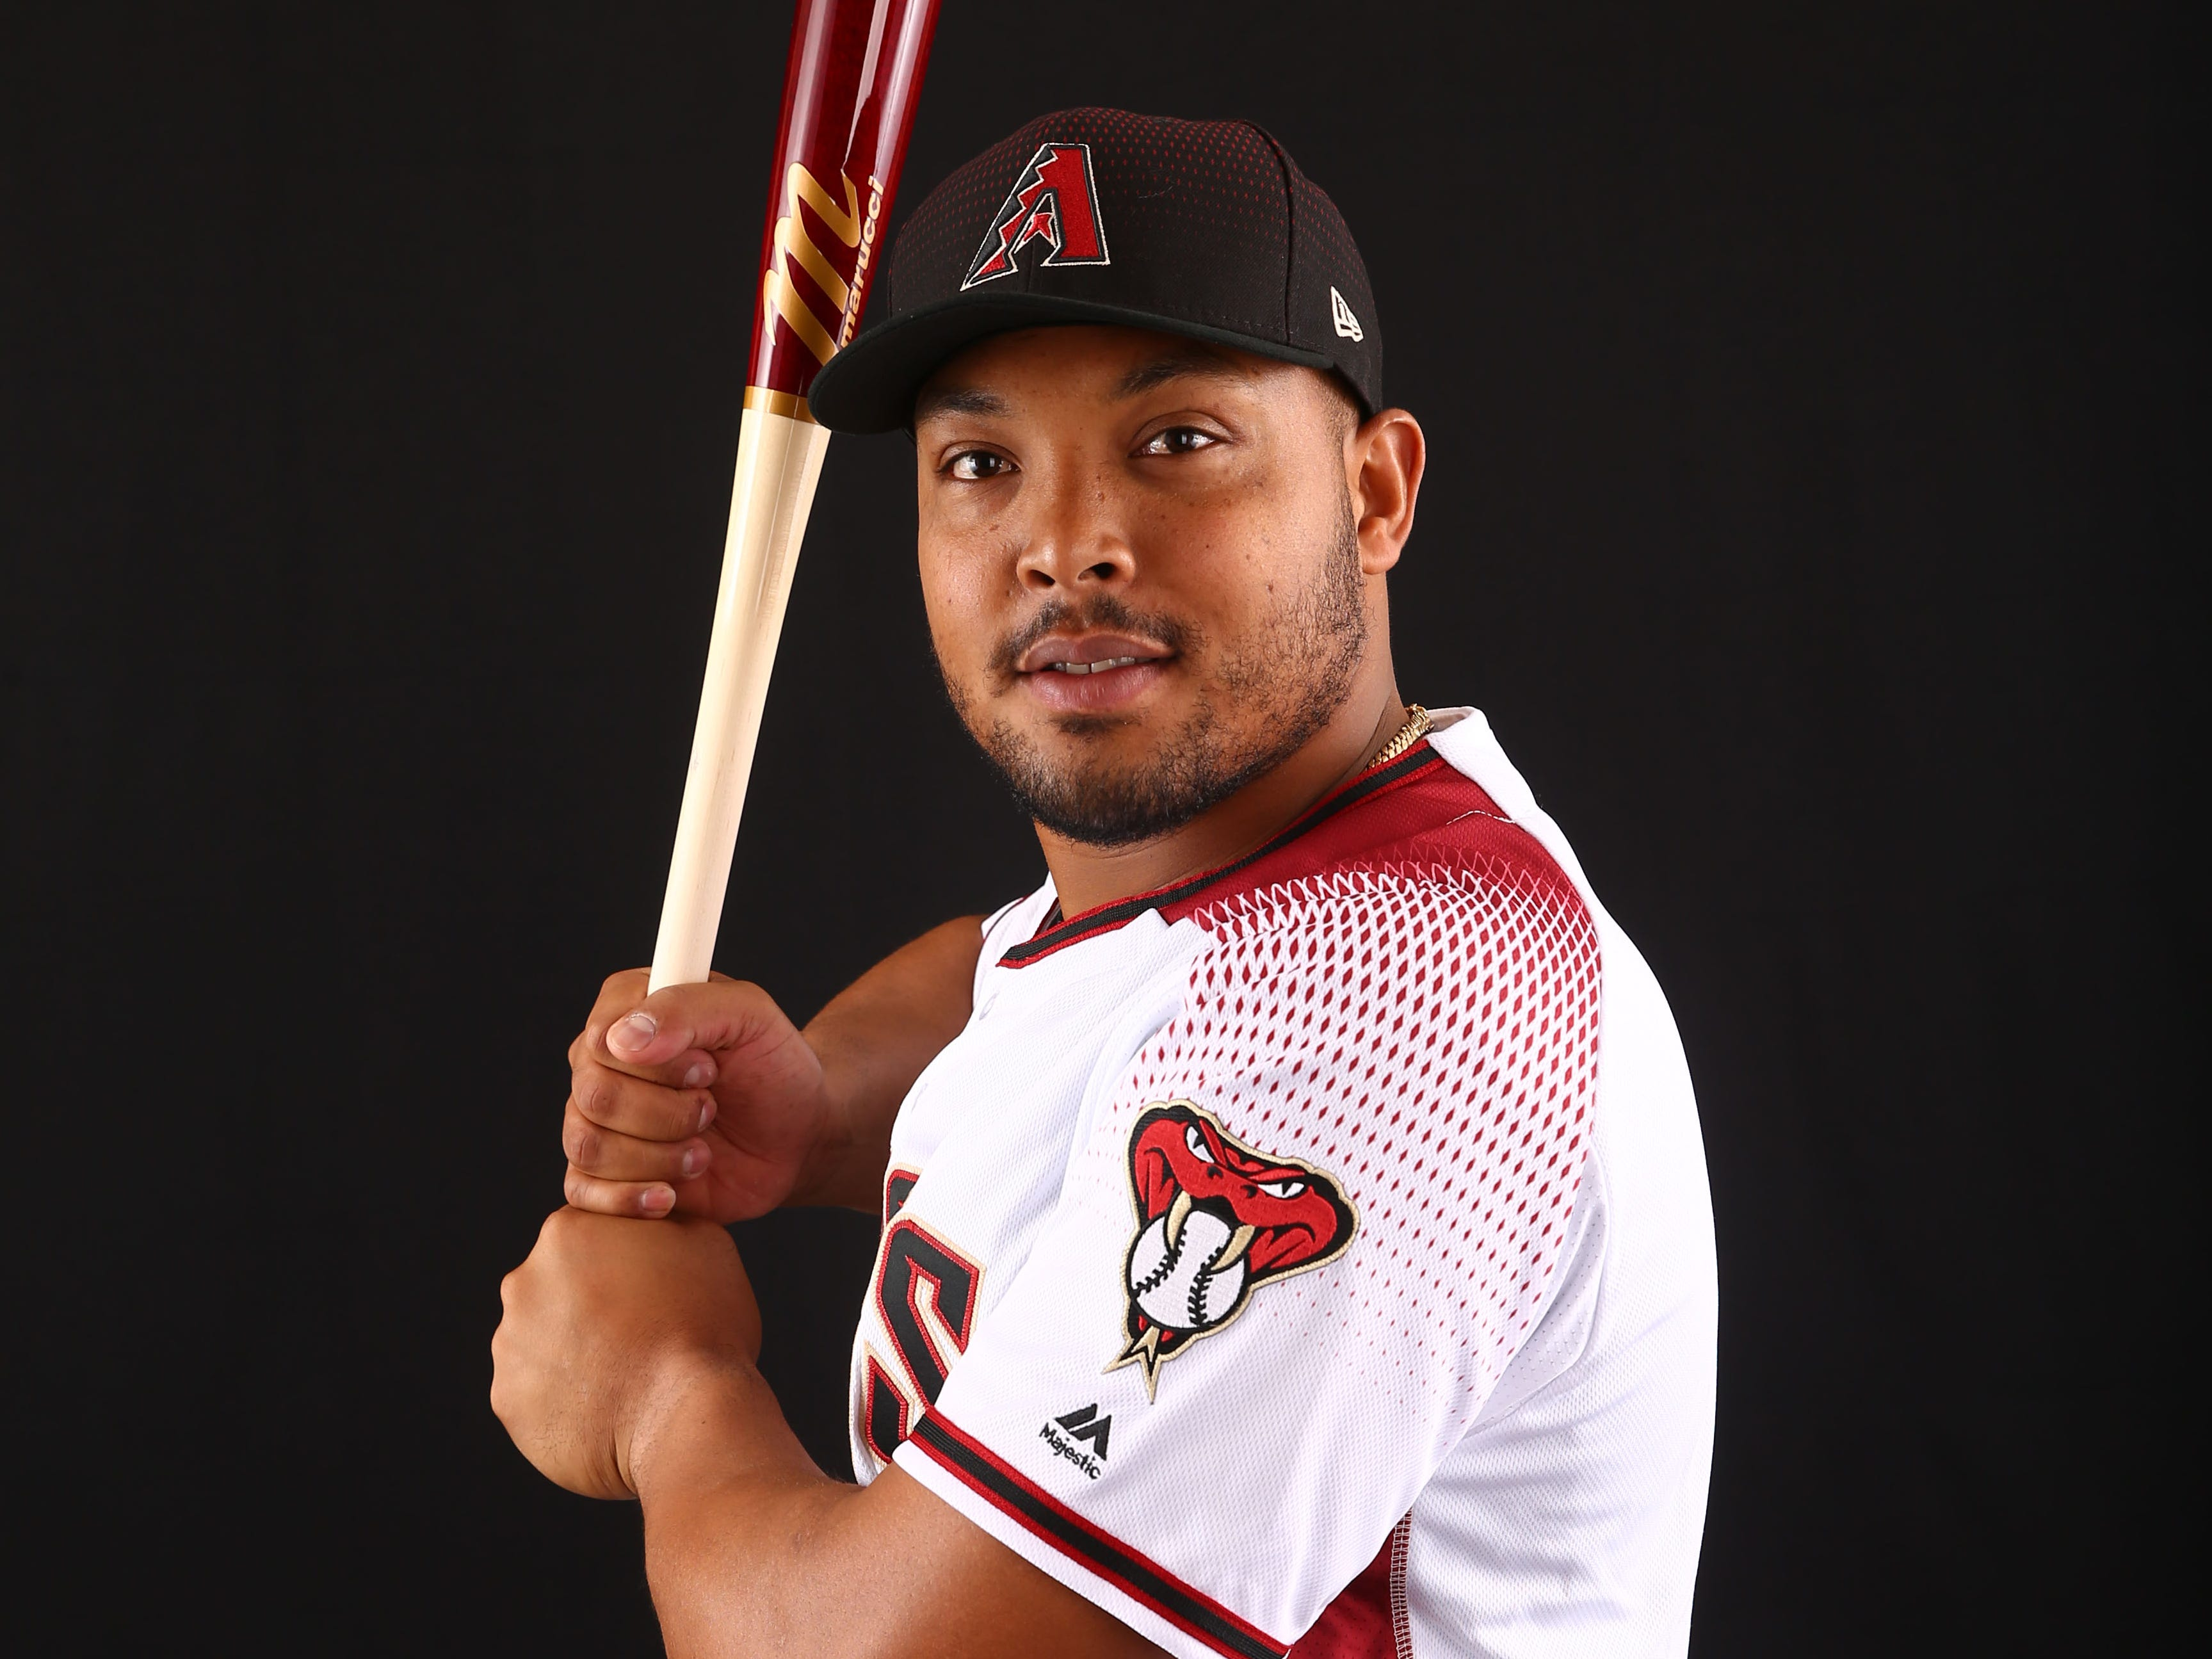 Yasmany Tomas of the Arizona Diamondbacks poses for a photo during the annual Spring Training Photo Day on Feb. 20 at Salt River Fields in Scottsdale, Ariz.